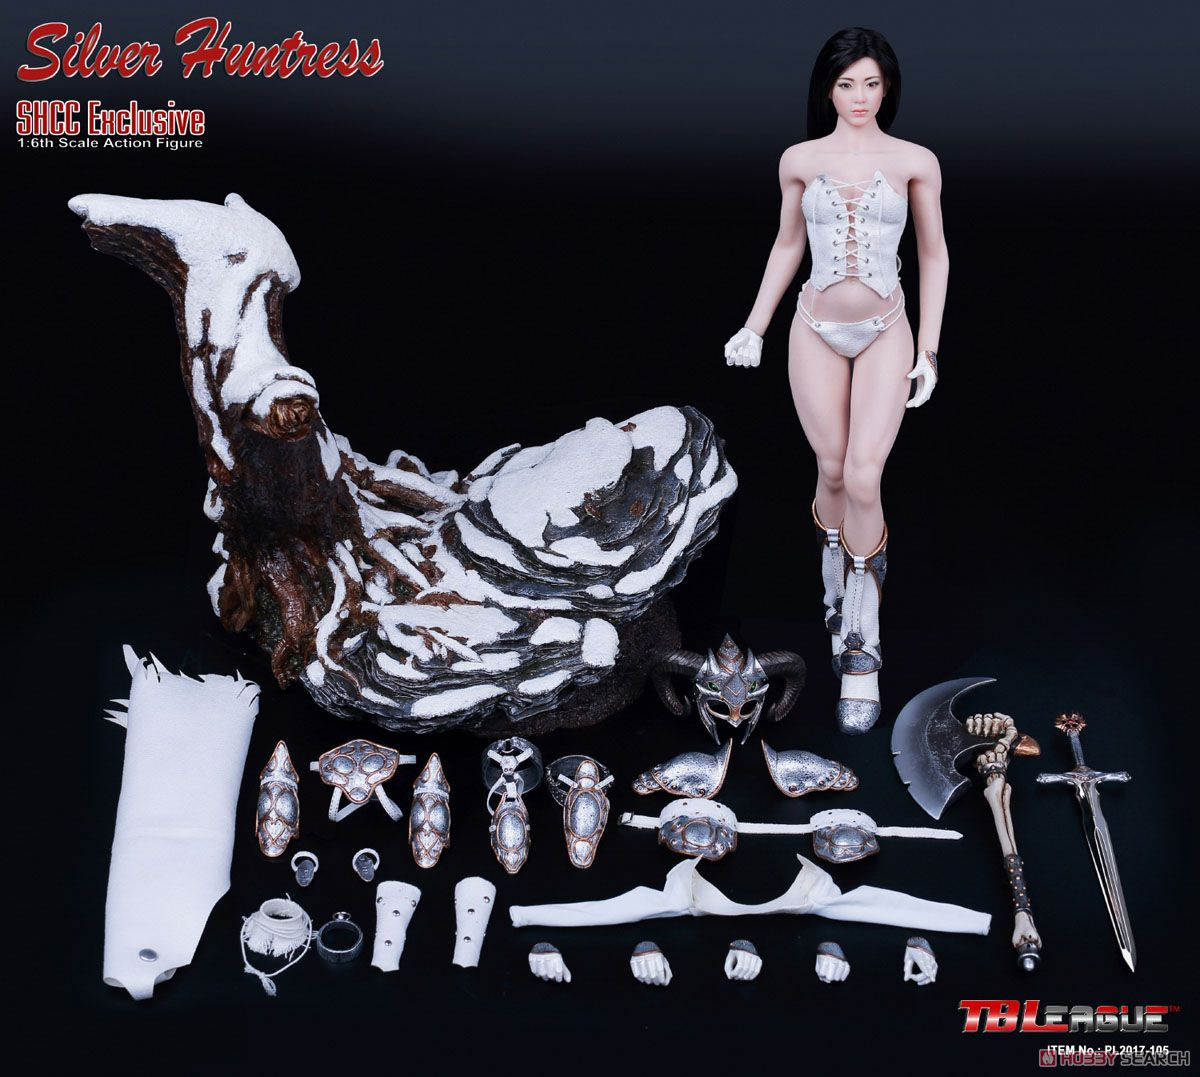 TB Leagued 1/6 Action Figure Silver Huntress SHCC2017 Limited (Fashion Doll) Item picture8